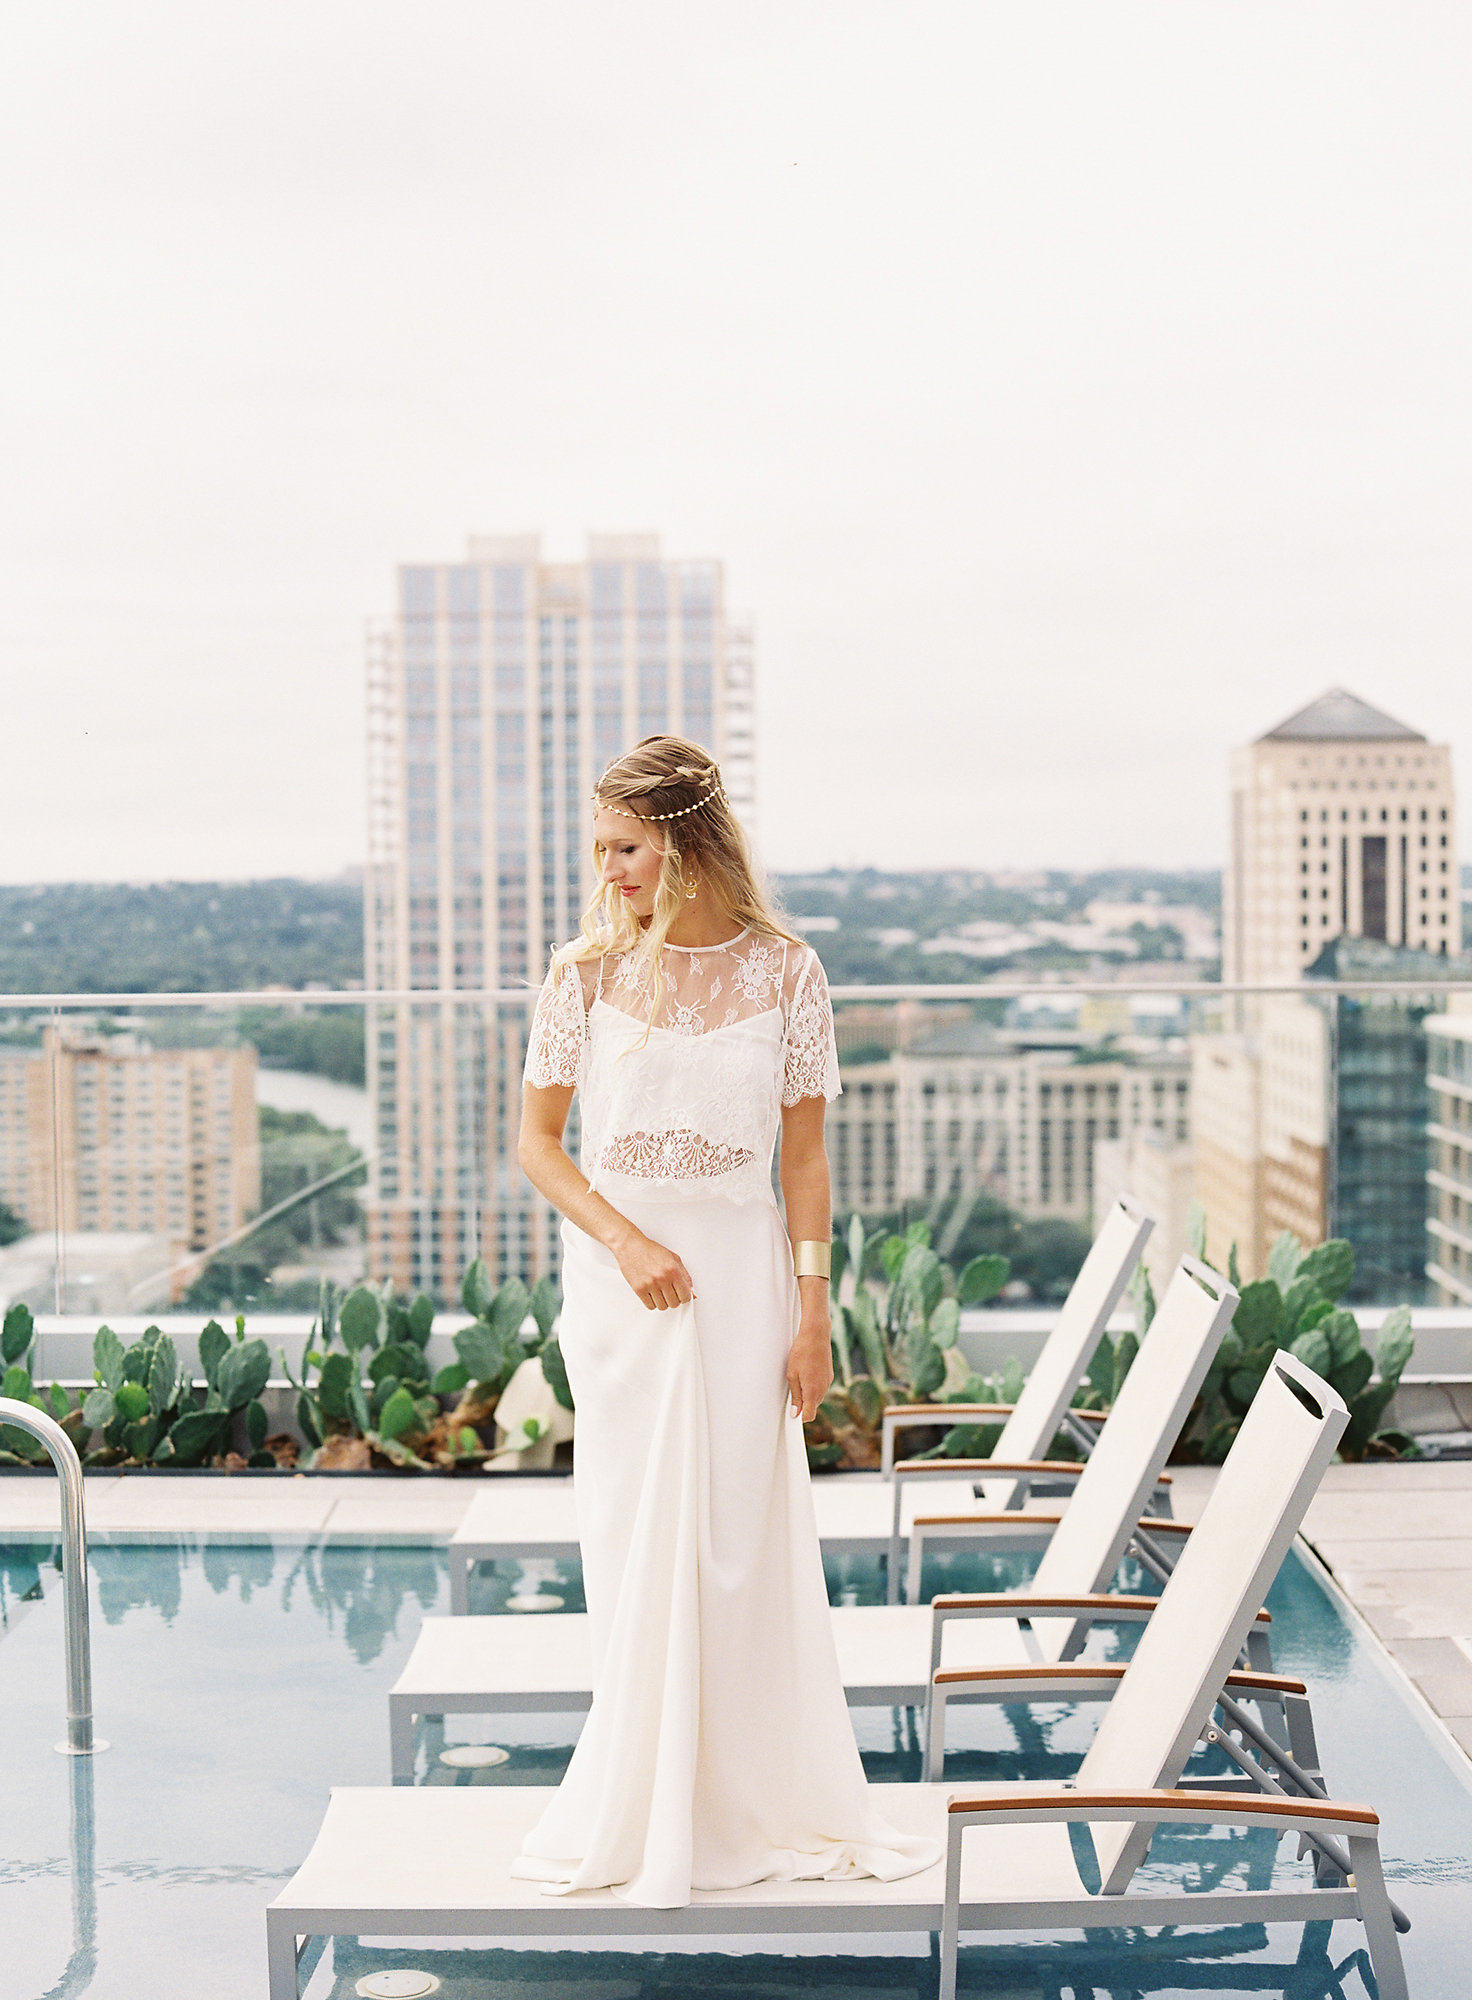 The Fashion: This crop top, lace overlay and high waisted skirt wedding ensemble from Unbridaled is one of my favorite wedding dress trends.